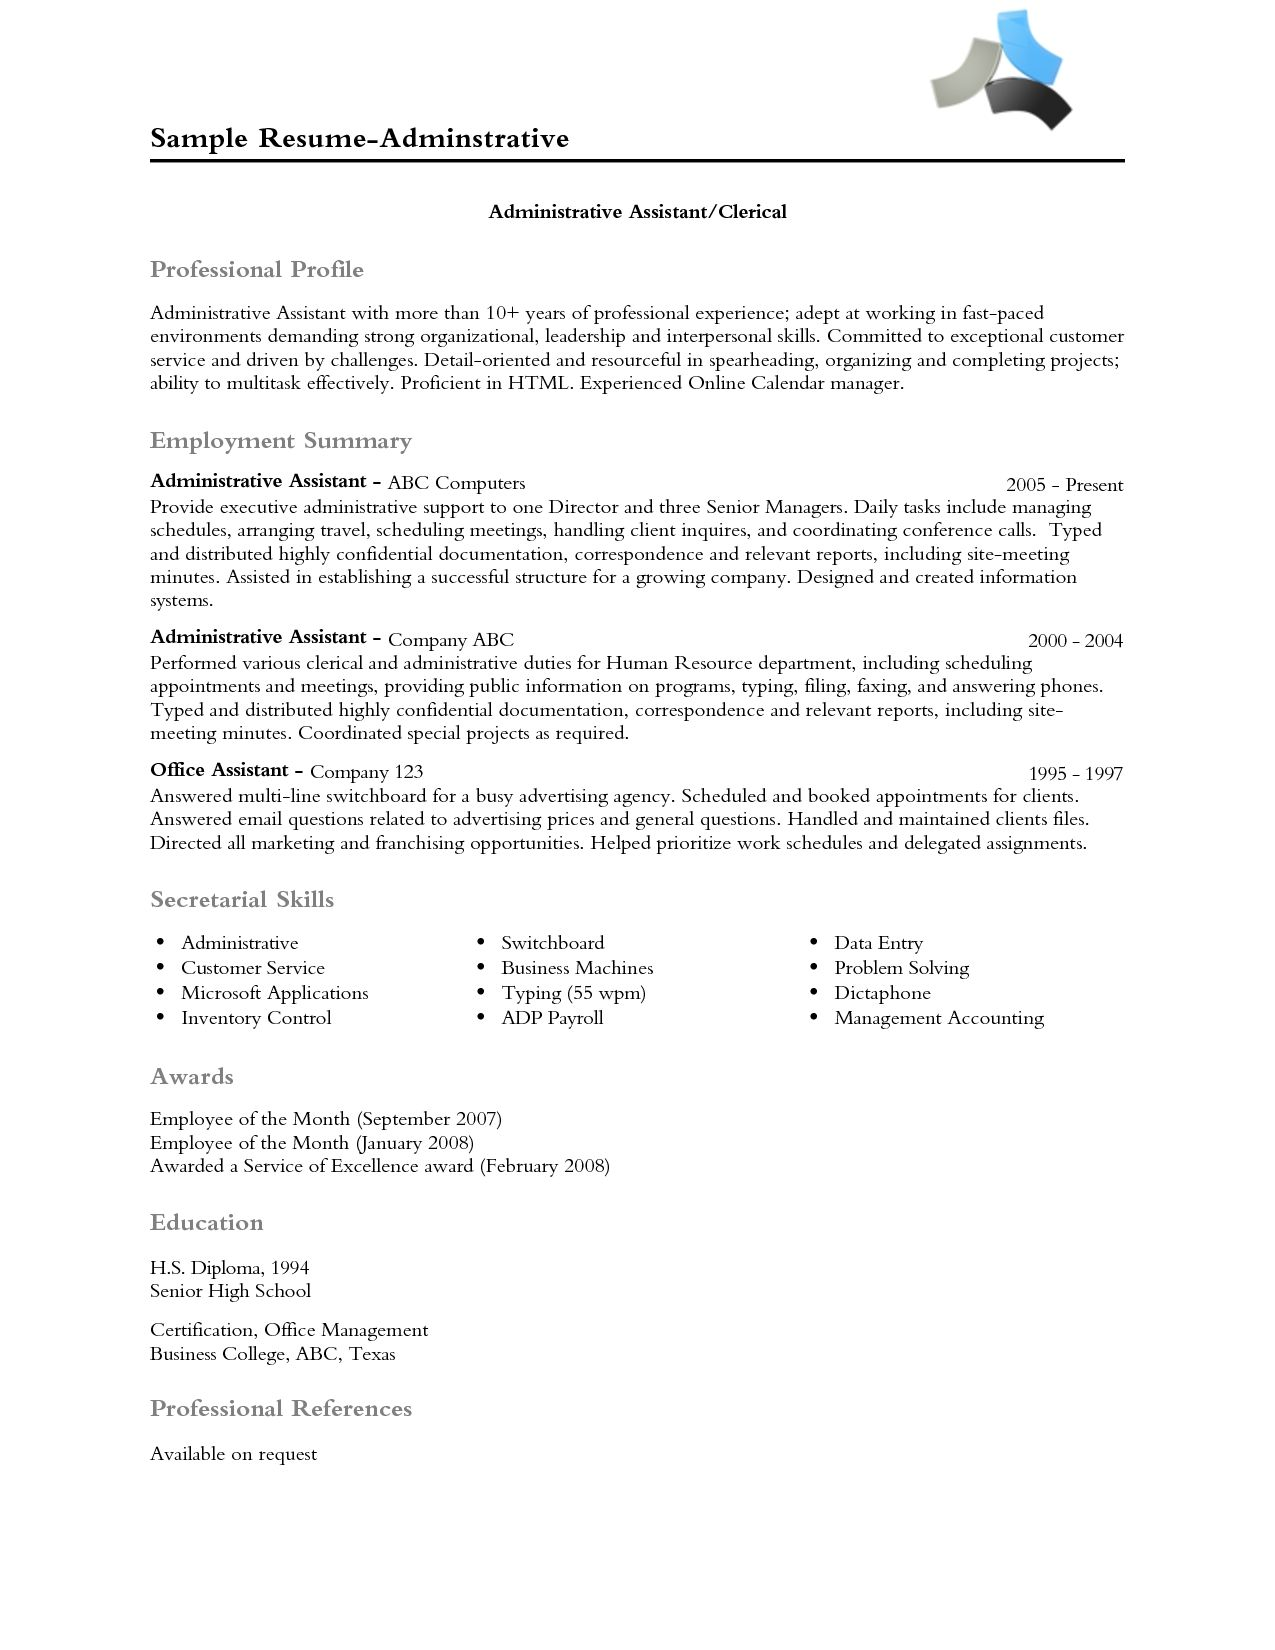 Wonderful Resume Professional Profile Examples Professional Profile Examples Resume  31f5da894